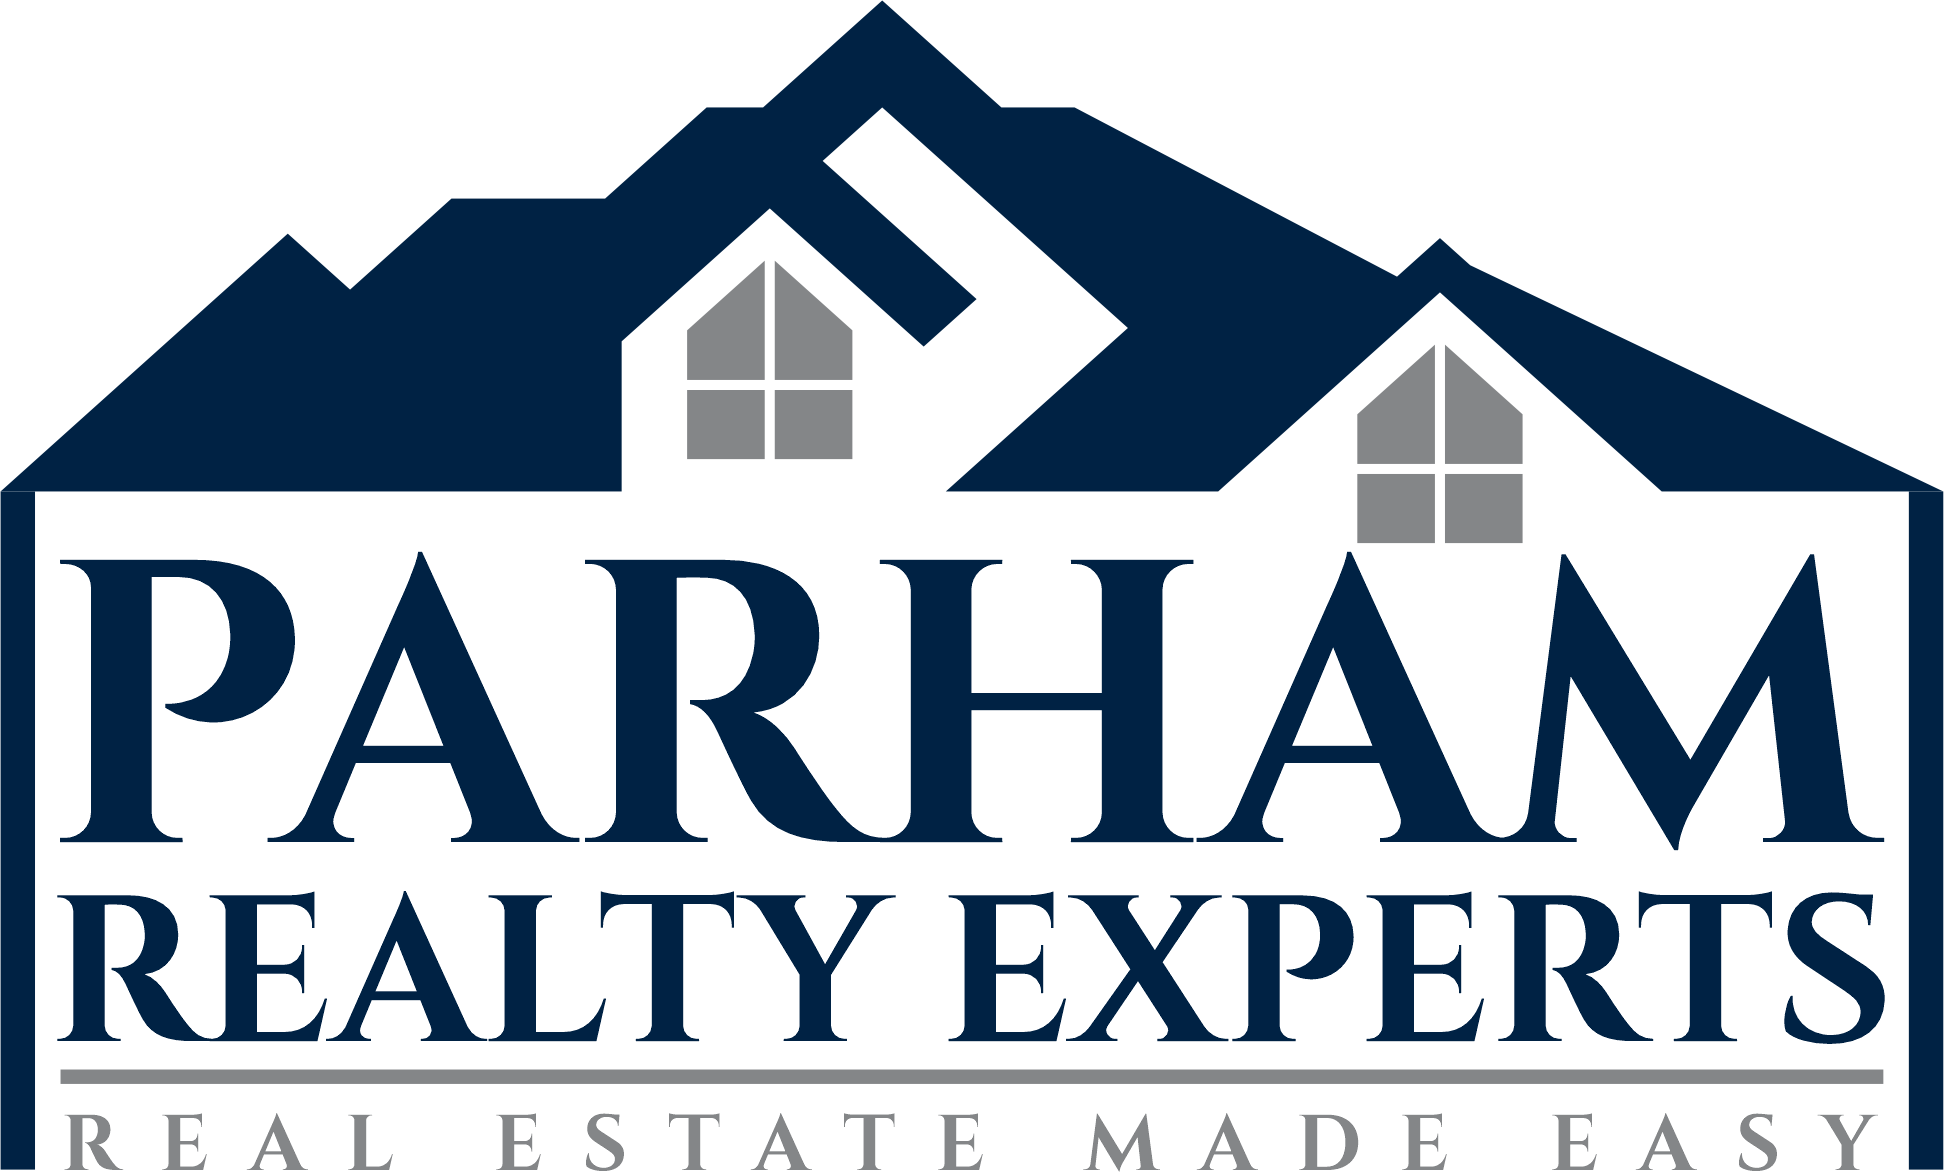 Parham Realty Experts